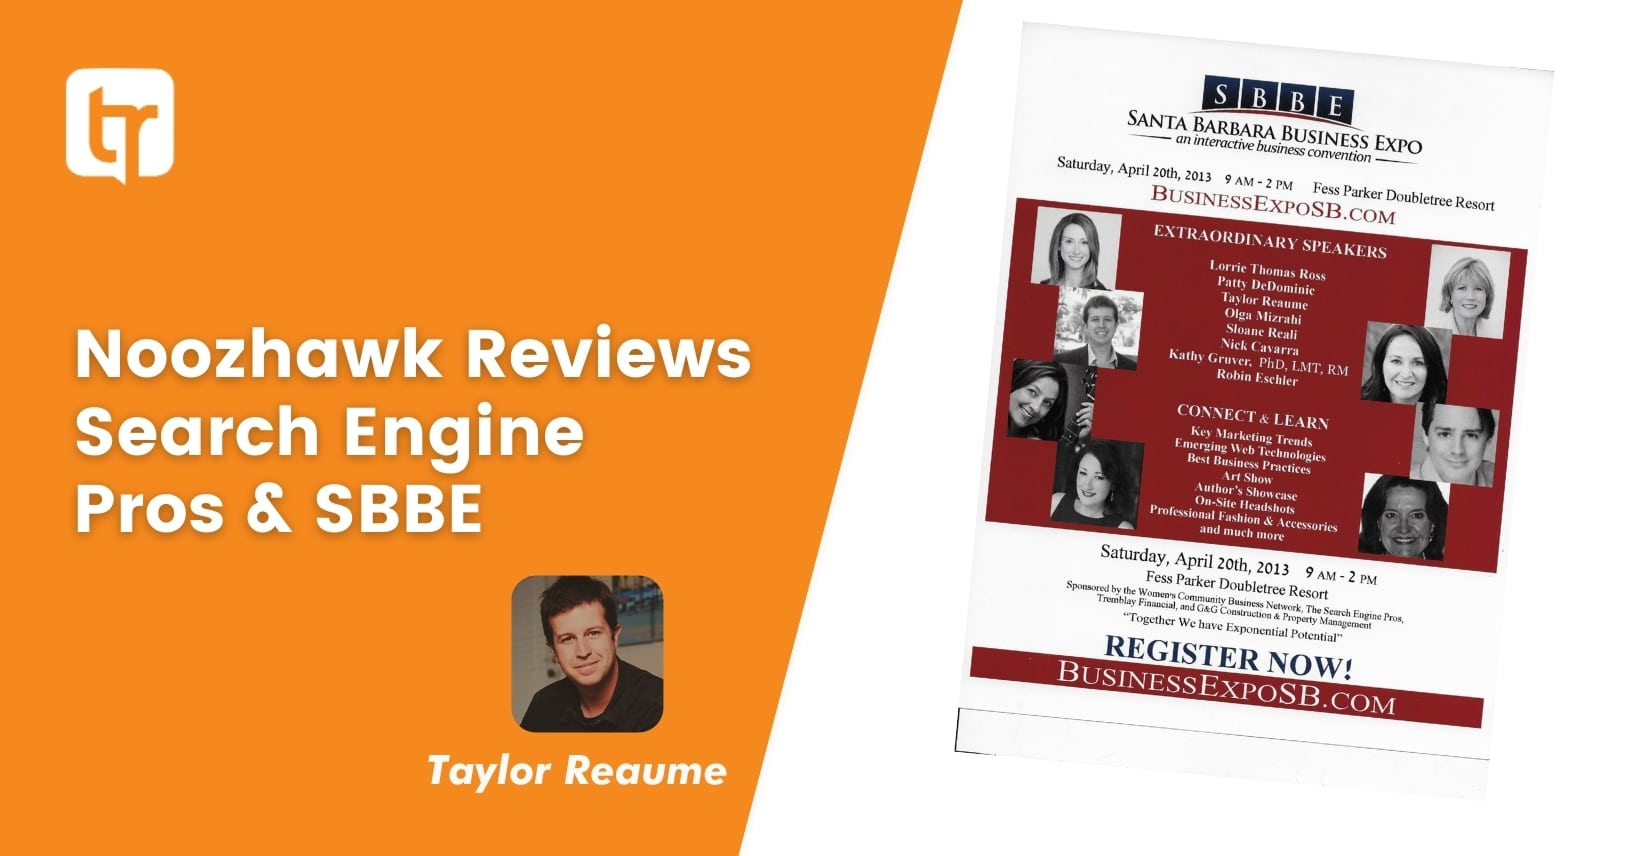 Noozhawk Reviews Search Engine Pros & SBBE